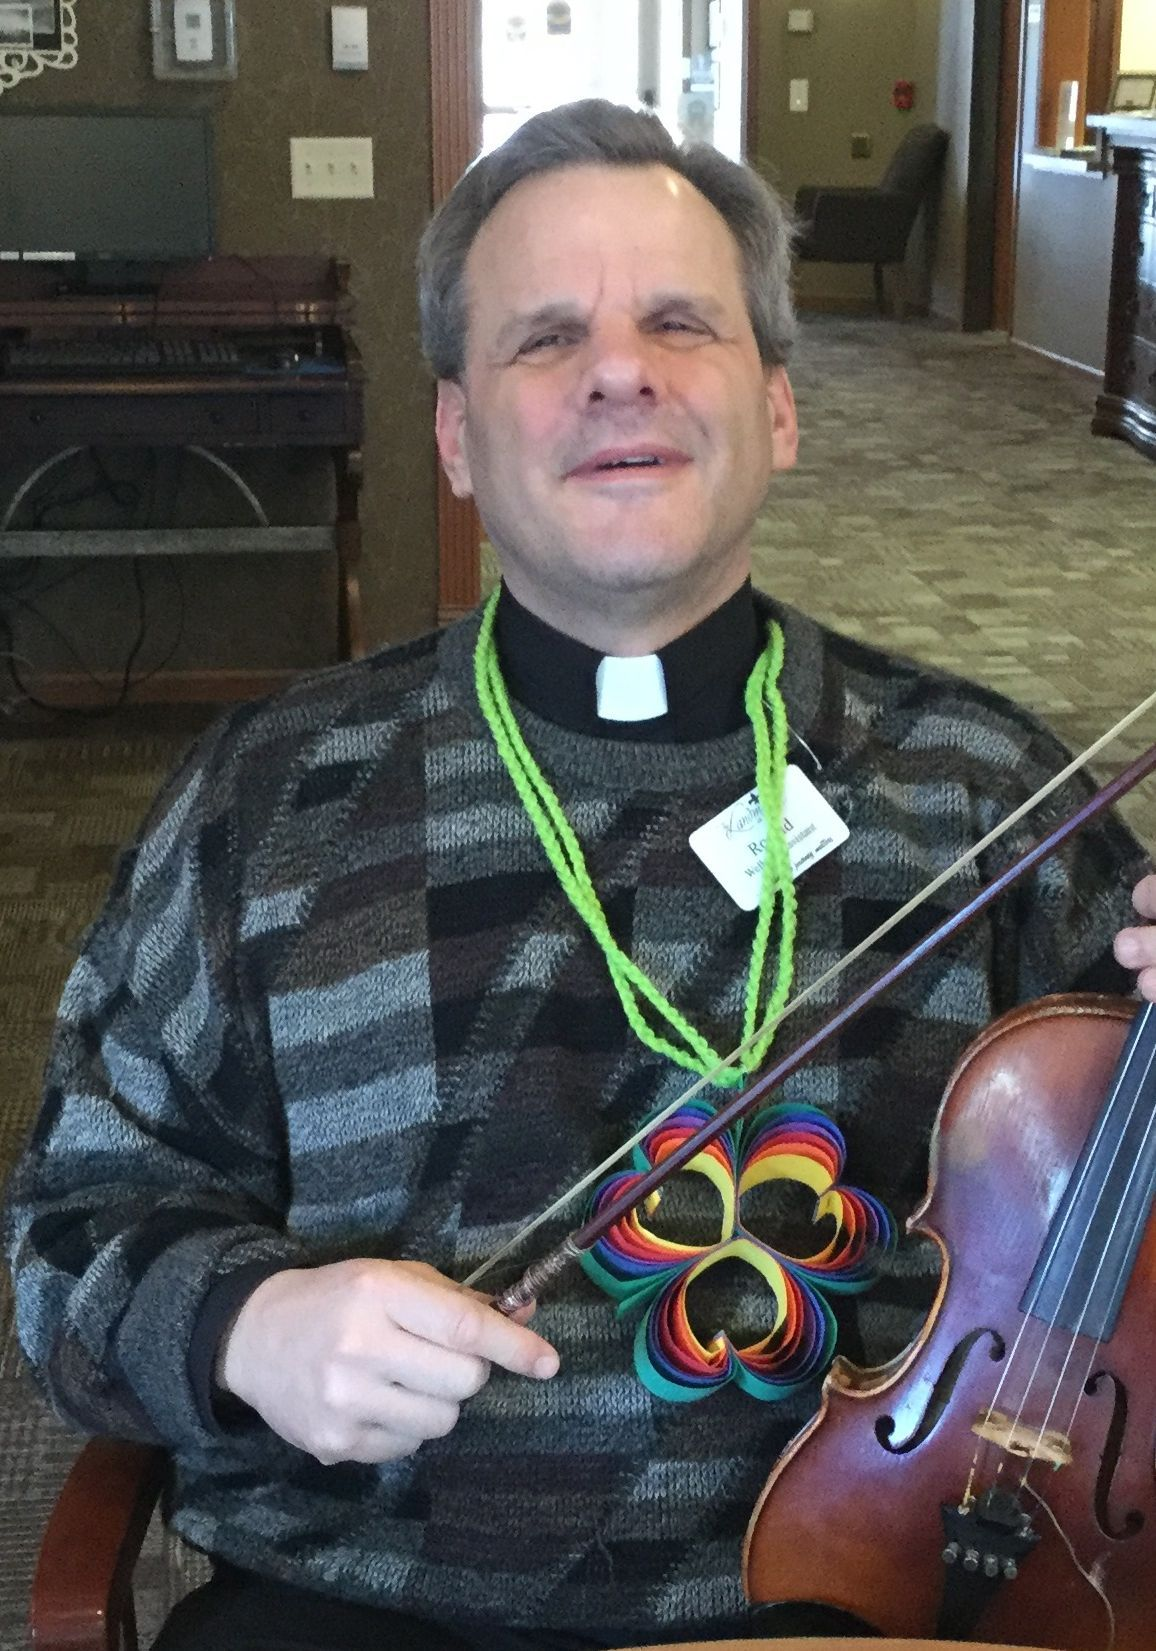 Father Ron pictured with a violin